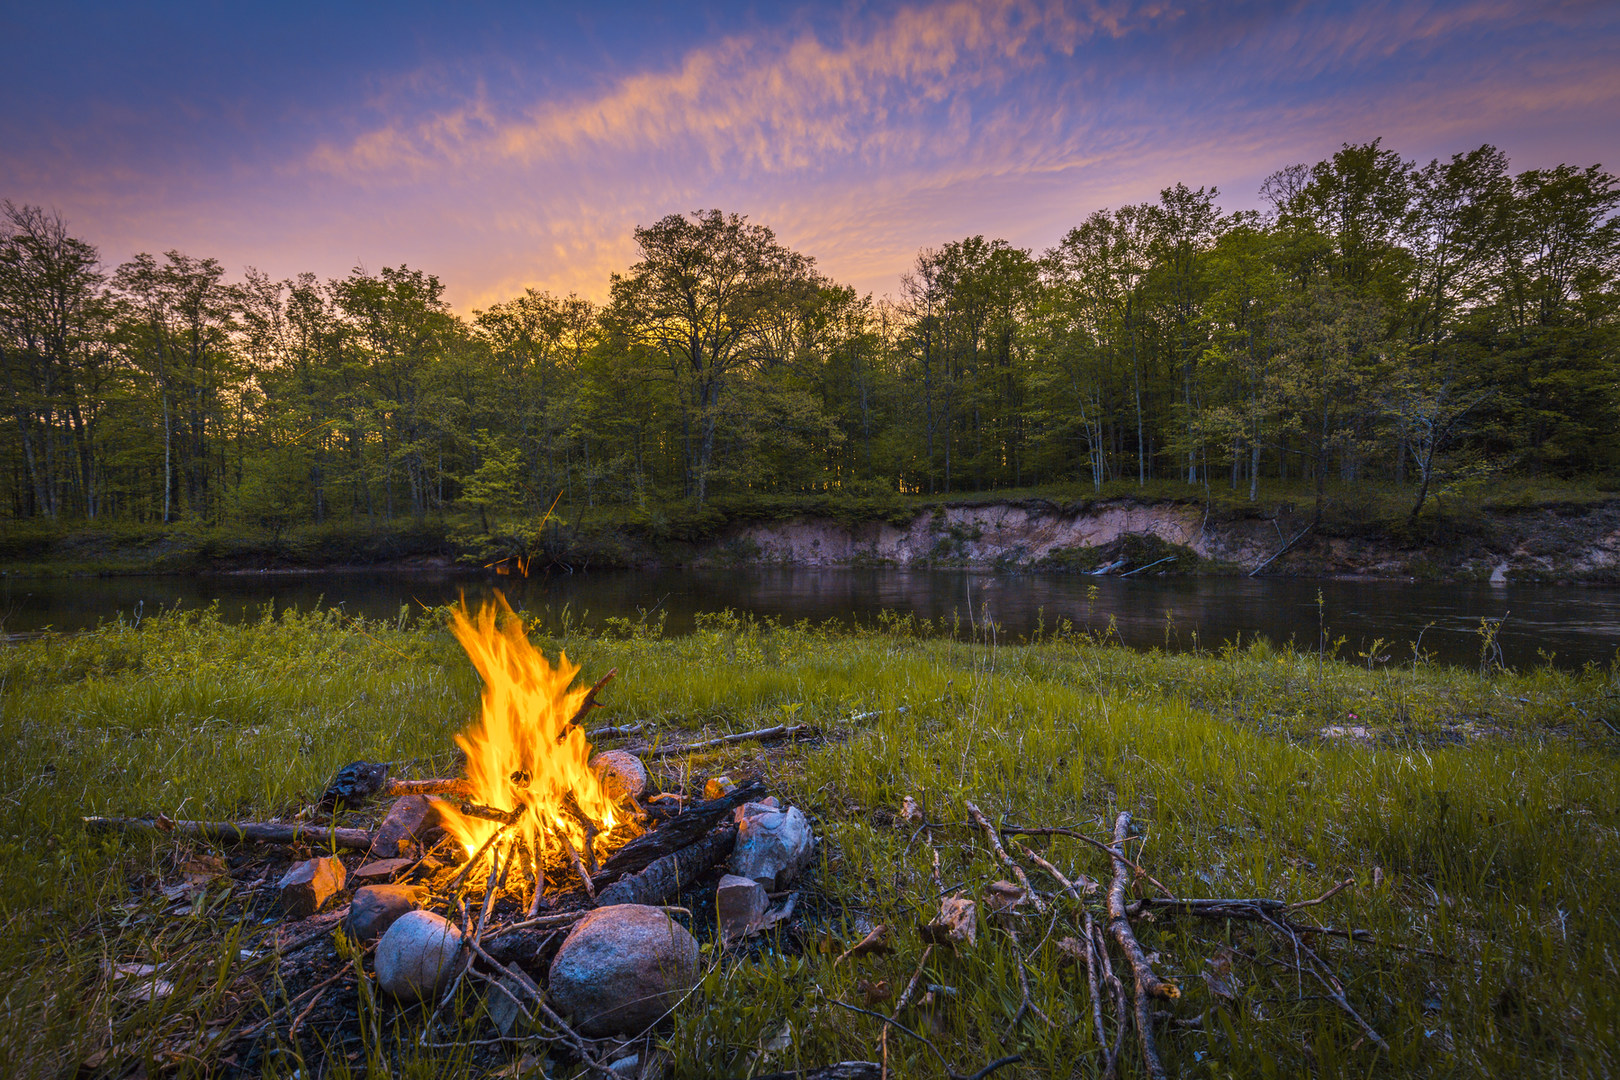 How To Be Campfire Conscious This Season